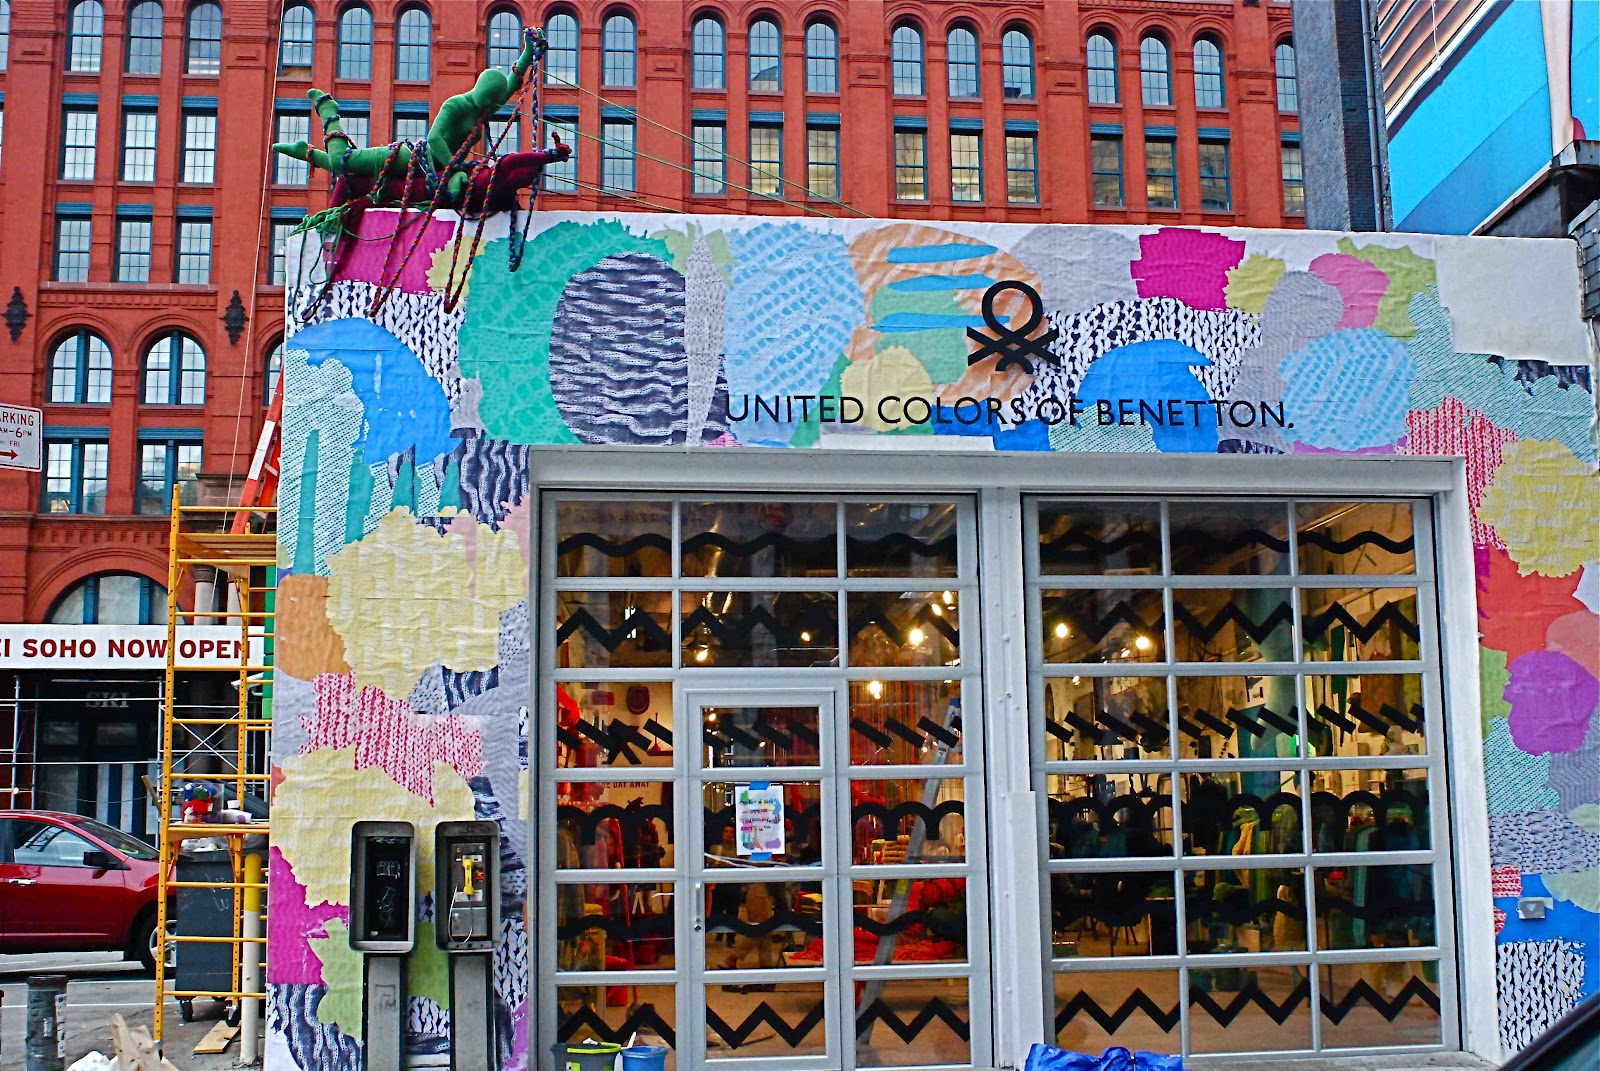 Knitting Stores Nyc : Nyc united colors of benetton pop up shop in soho